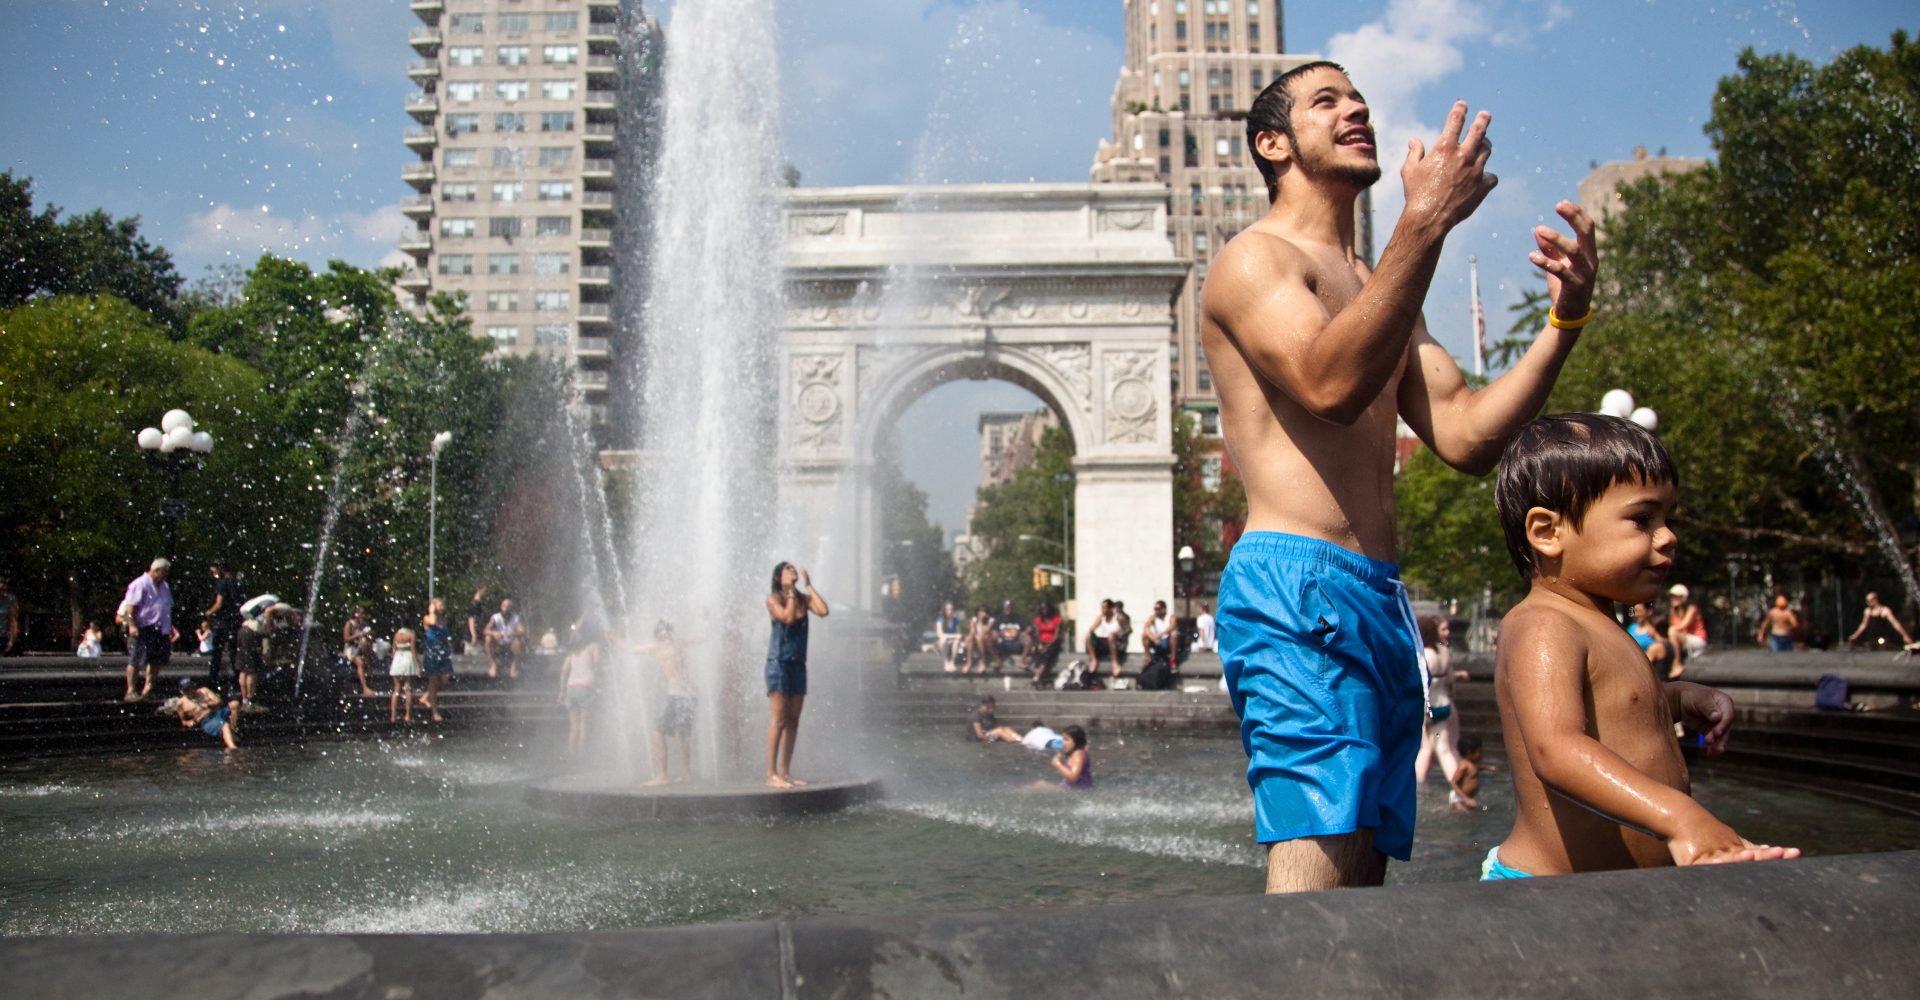 A father helps his son out of the fountain in Washington Square Park as they try to keep cool from yet another east coast heat wave.